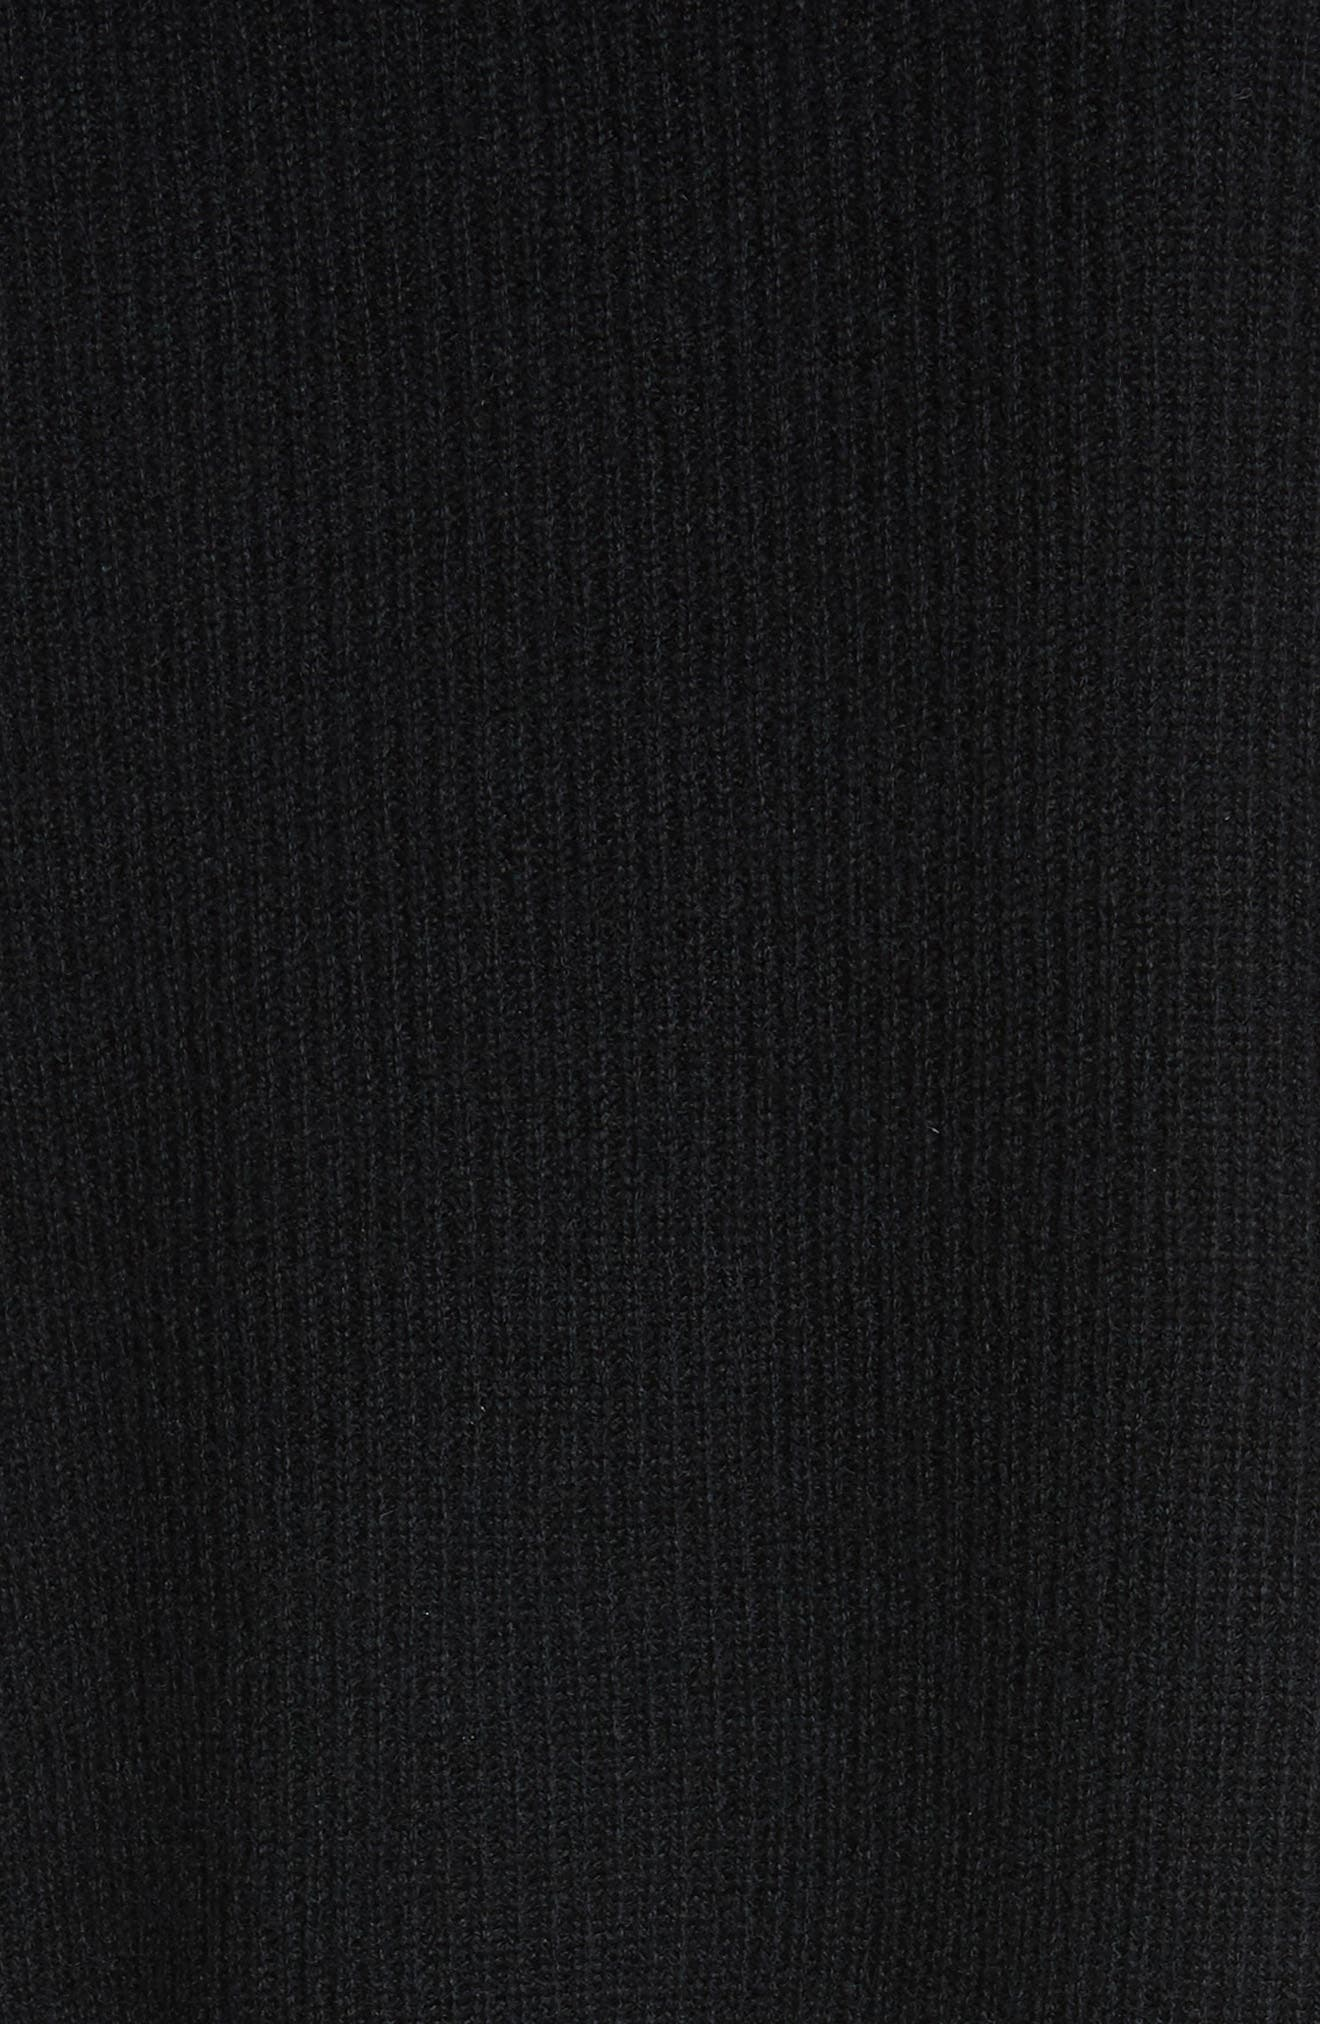 Off the Shoulder Wool & Cashmere Sweater,                             Alternate thumbnail 6, color,                             Black